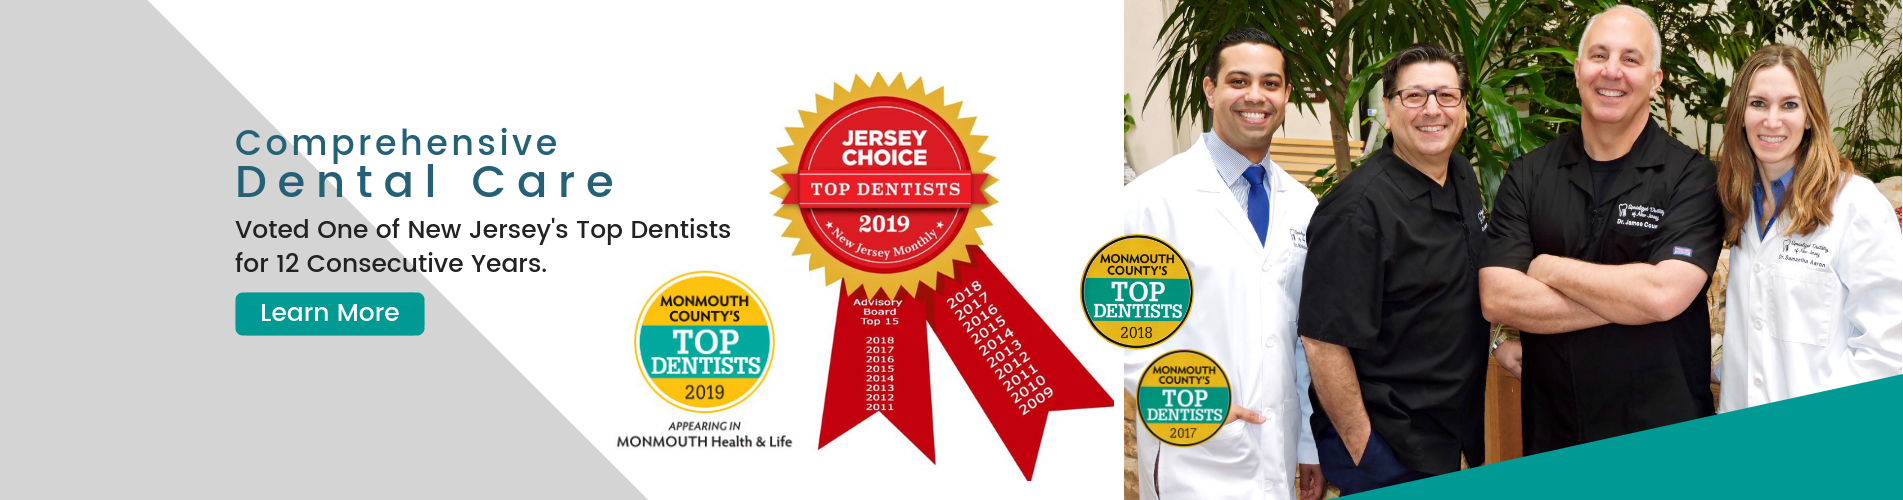 voted top dentists in NJ